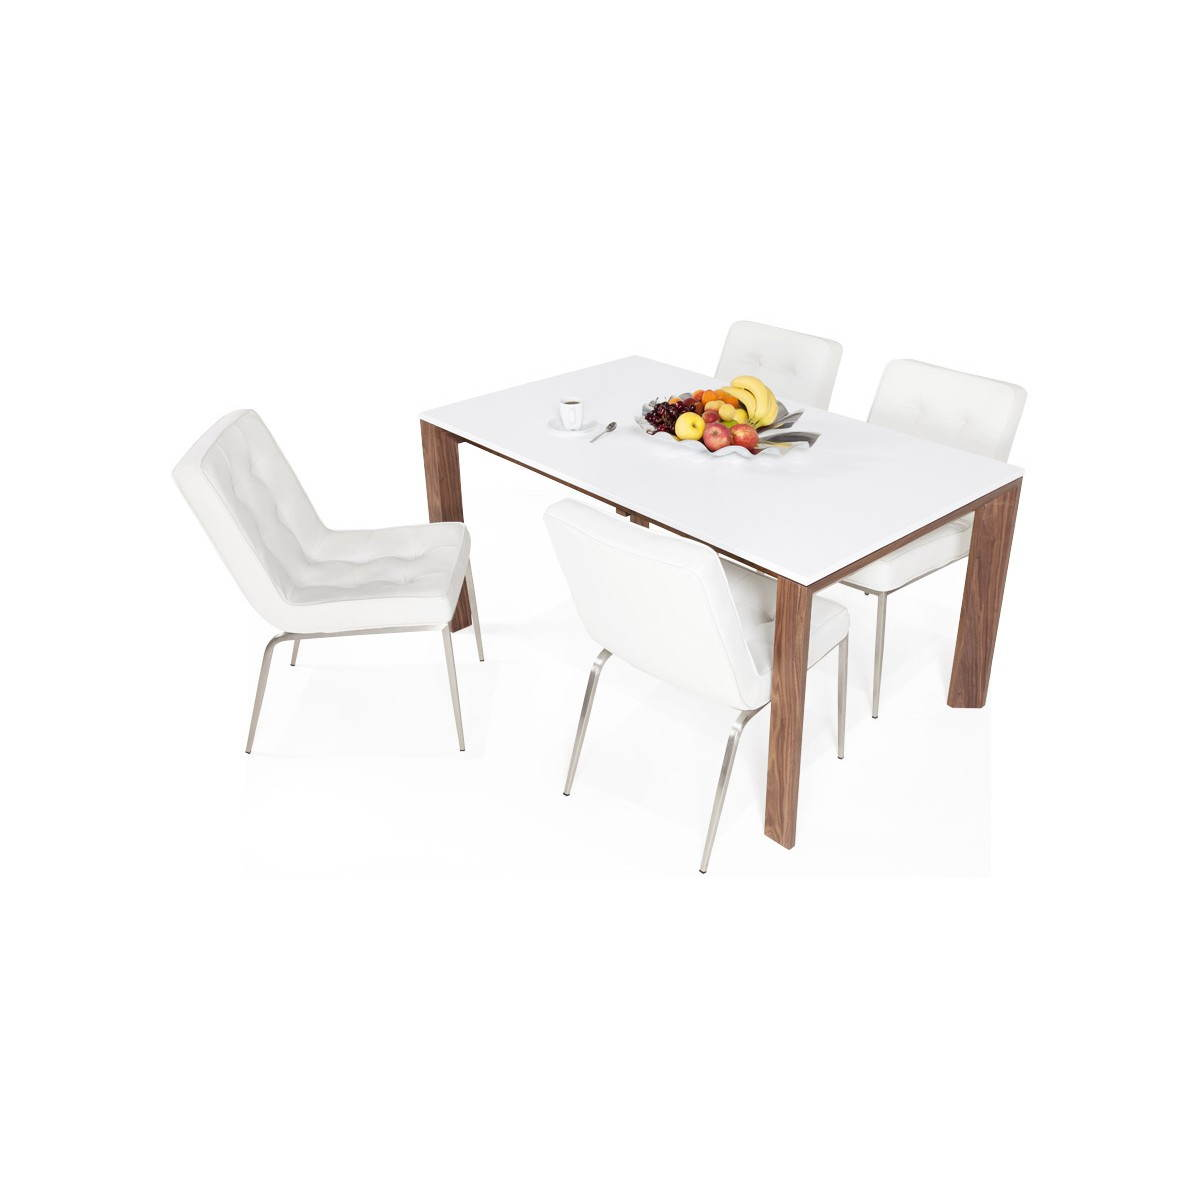 Table Bois Rallonge Ikea